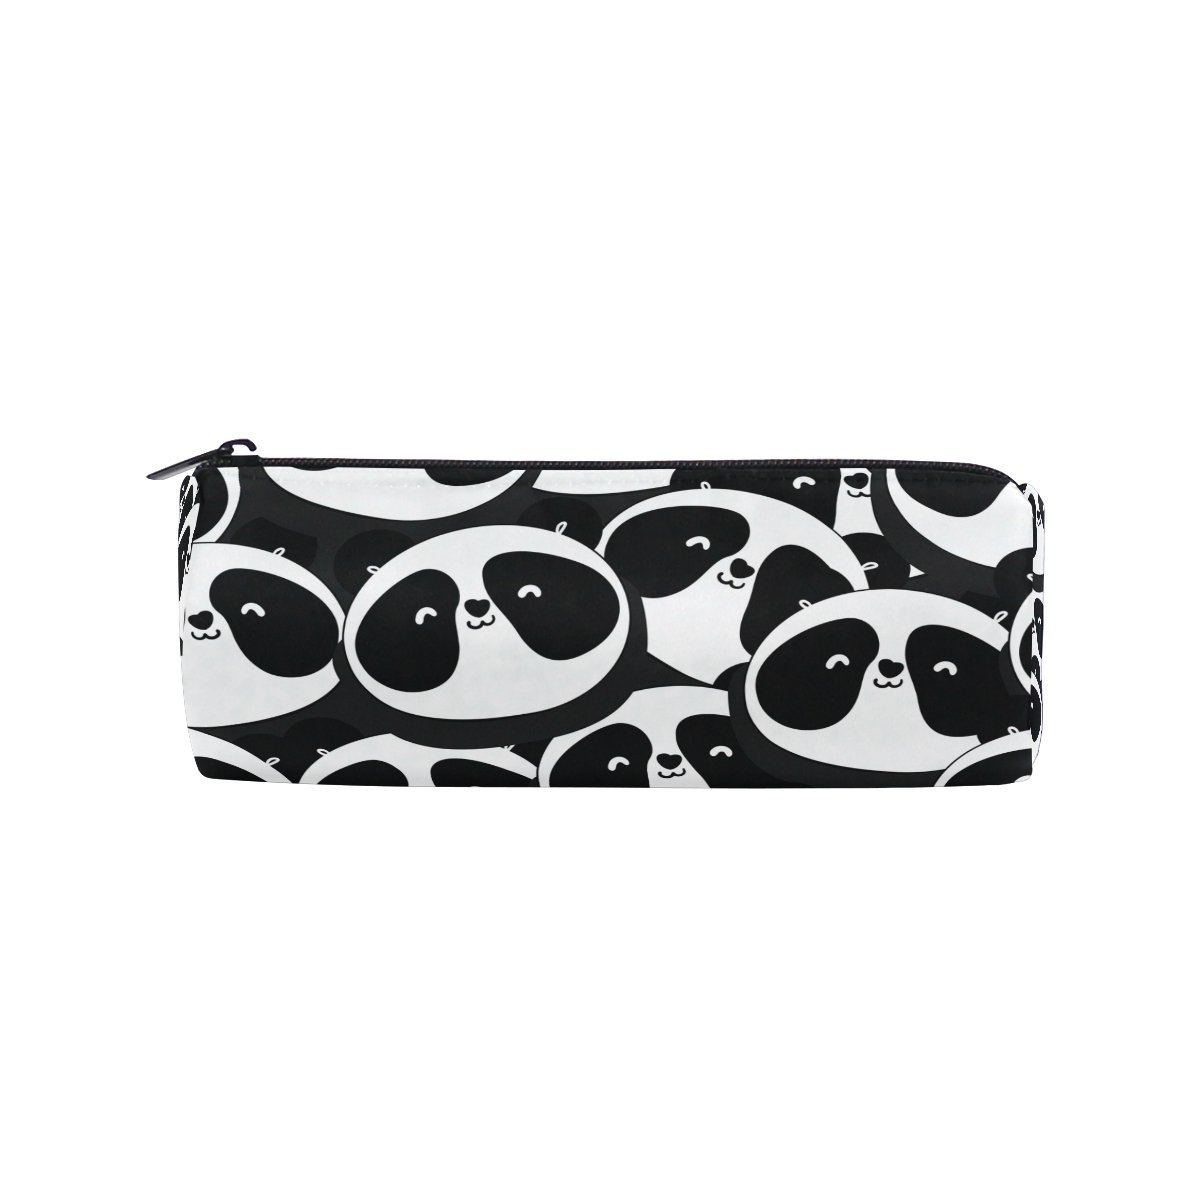 ShineSnow Handdrawn Panda Pencil Pen Bag Case,Cartoon Animal Student Office College Middle School High School Large Storage Pouch Holder Box Organizer